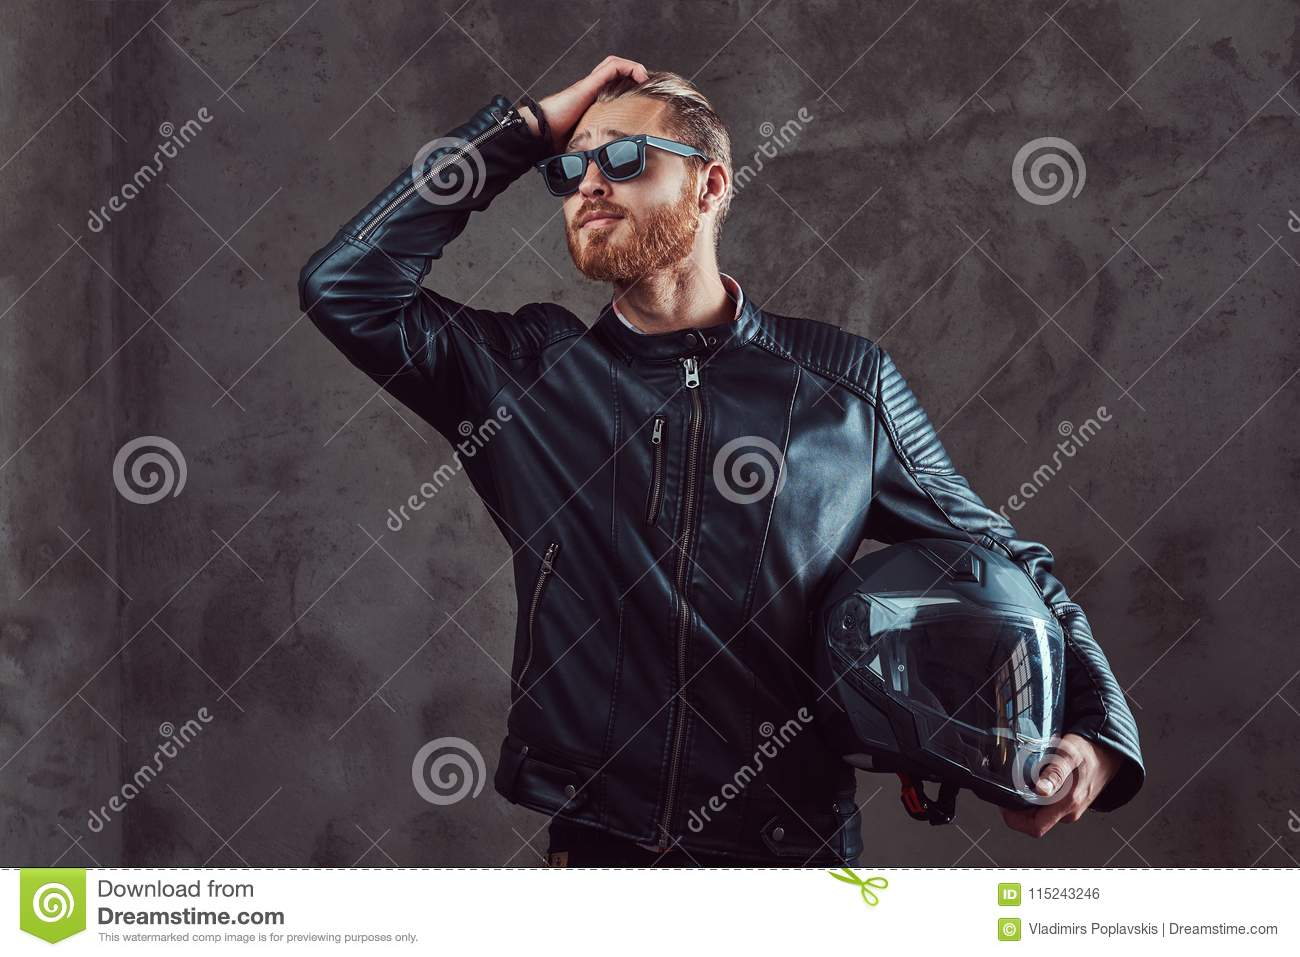 Portrait of a handsome stylish redhead biker in a black leather jacket and sunglasses, holds motorcycle helmet, posing